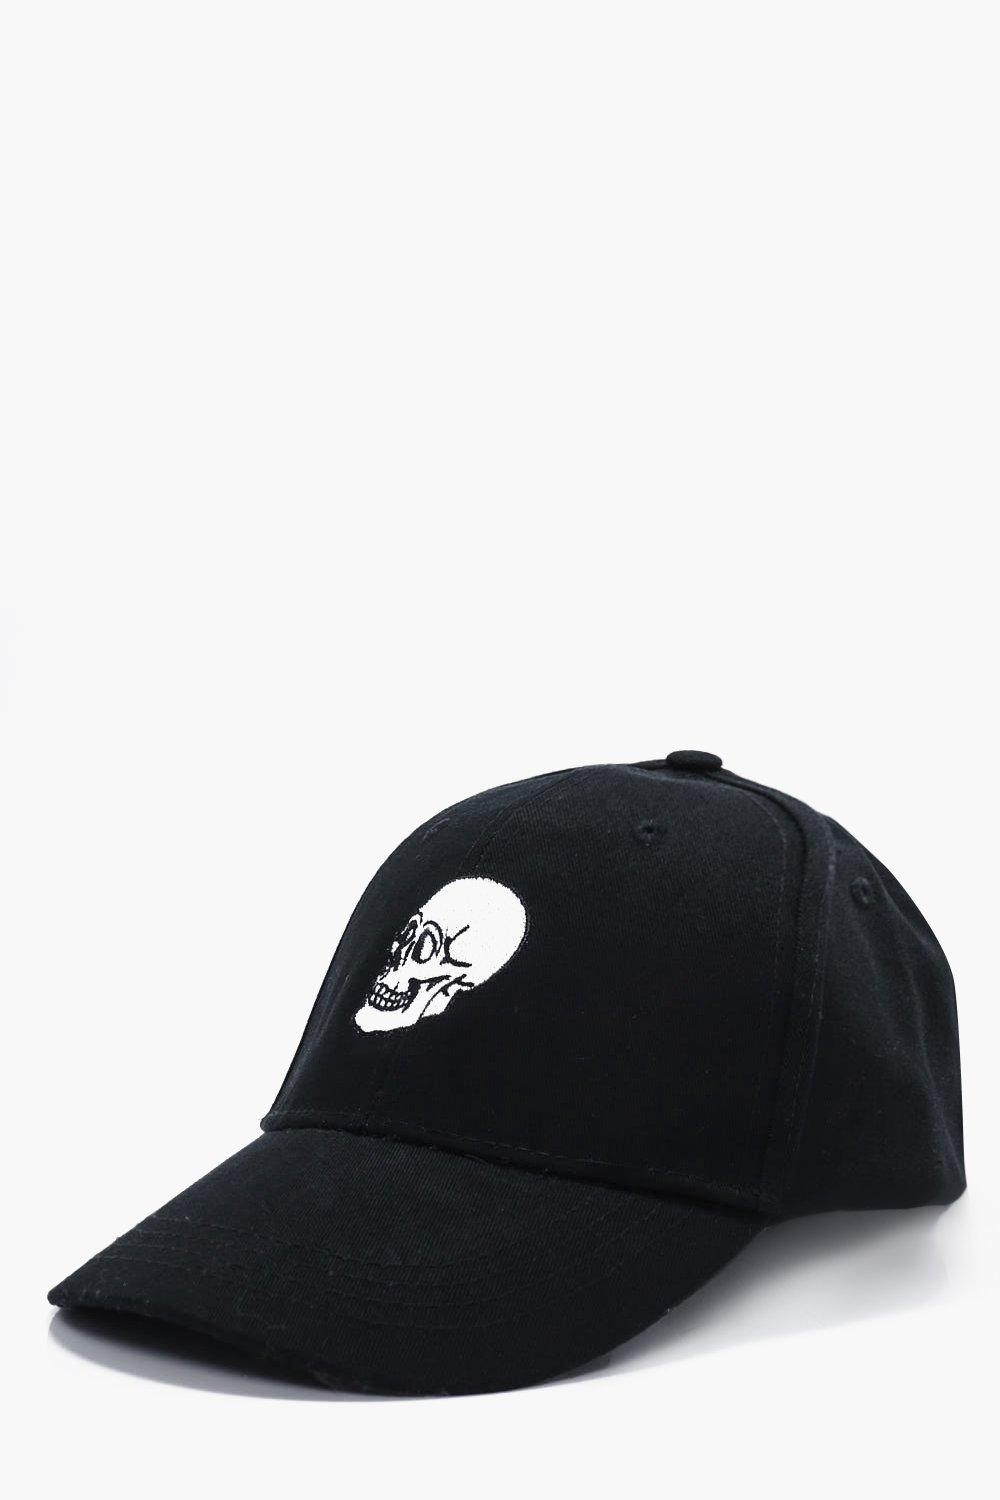 Embroidered Snapback Cap - black - Skull Embroider